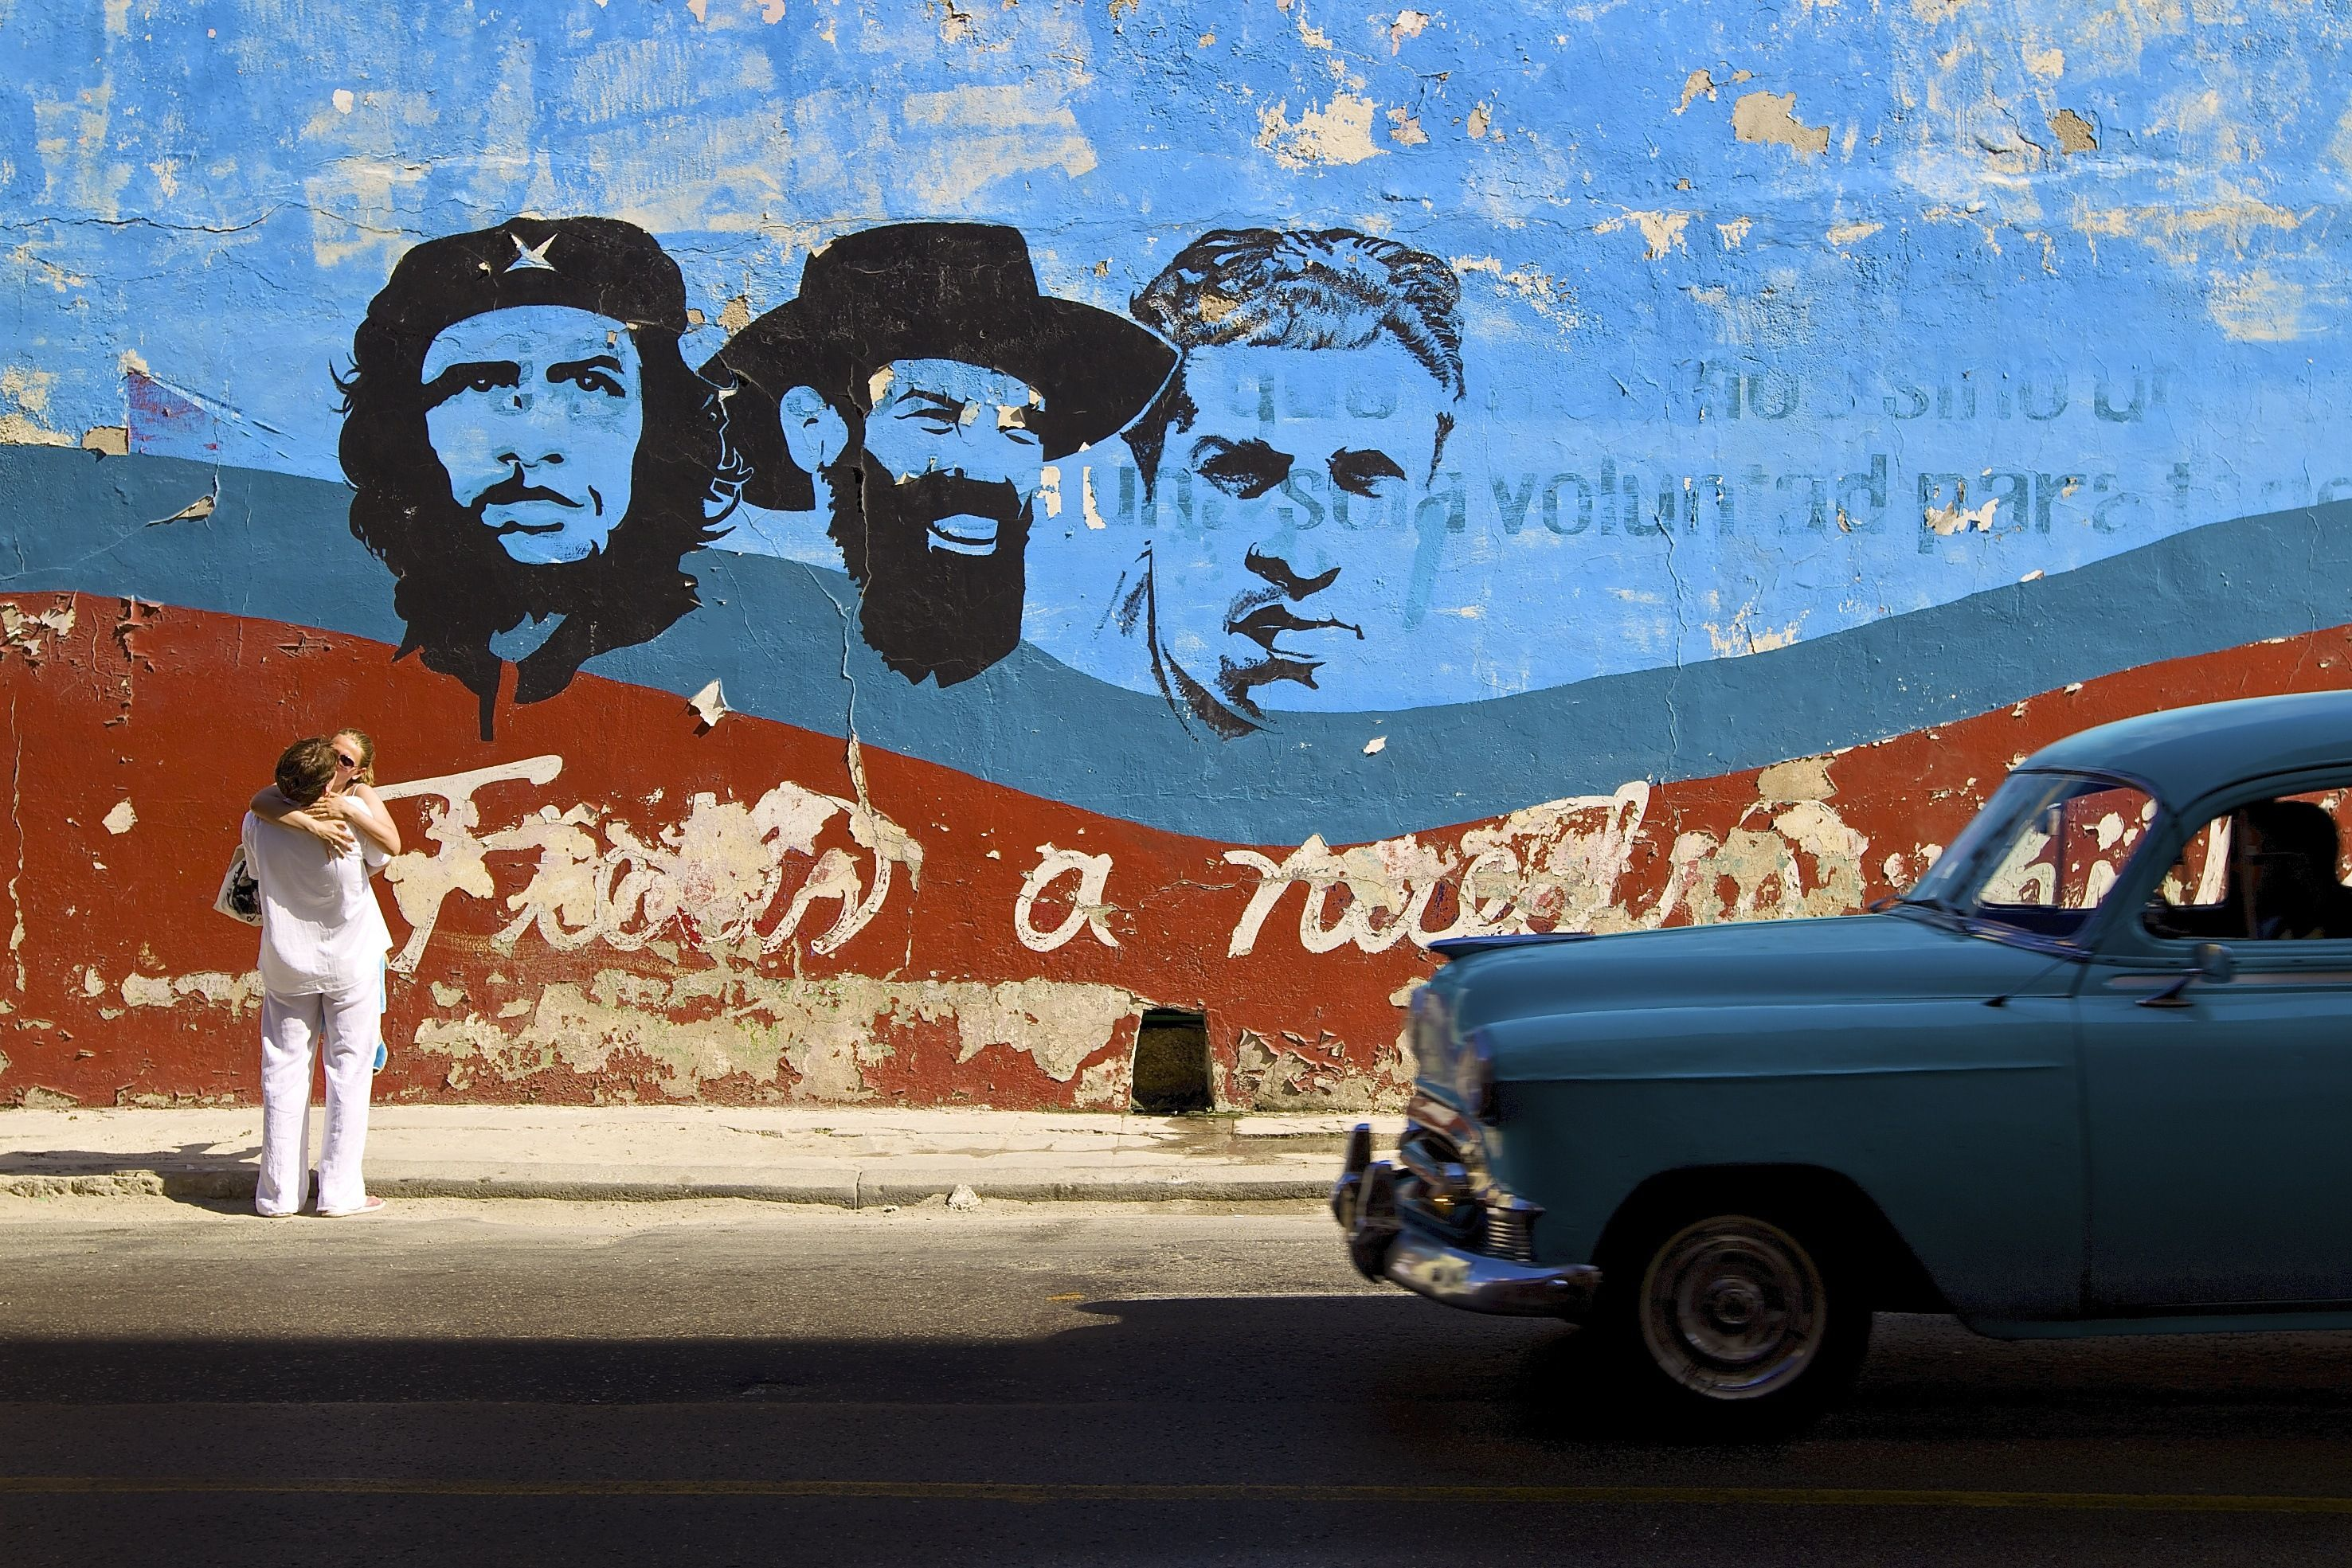 Cuba Wallpapers High Quality | Download Free